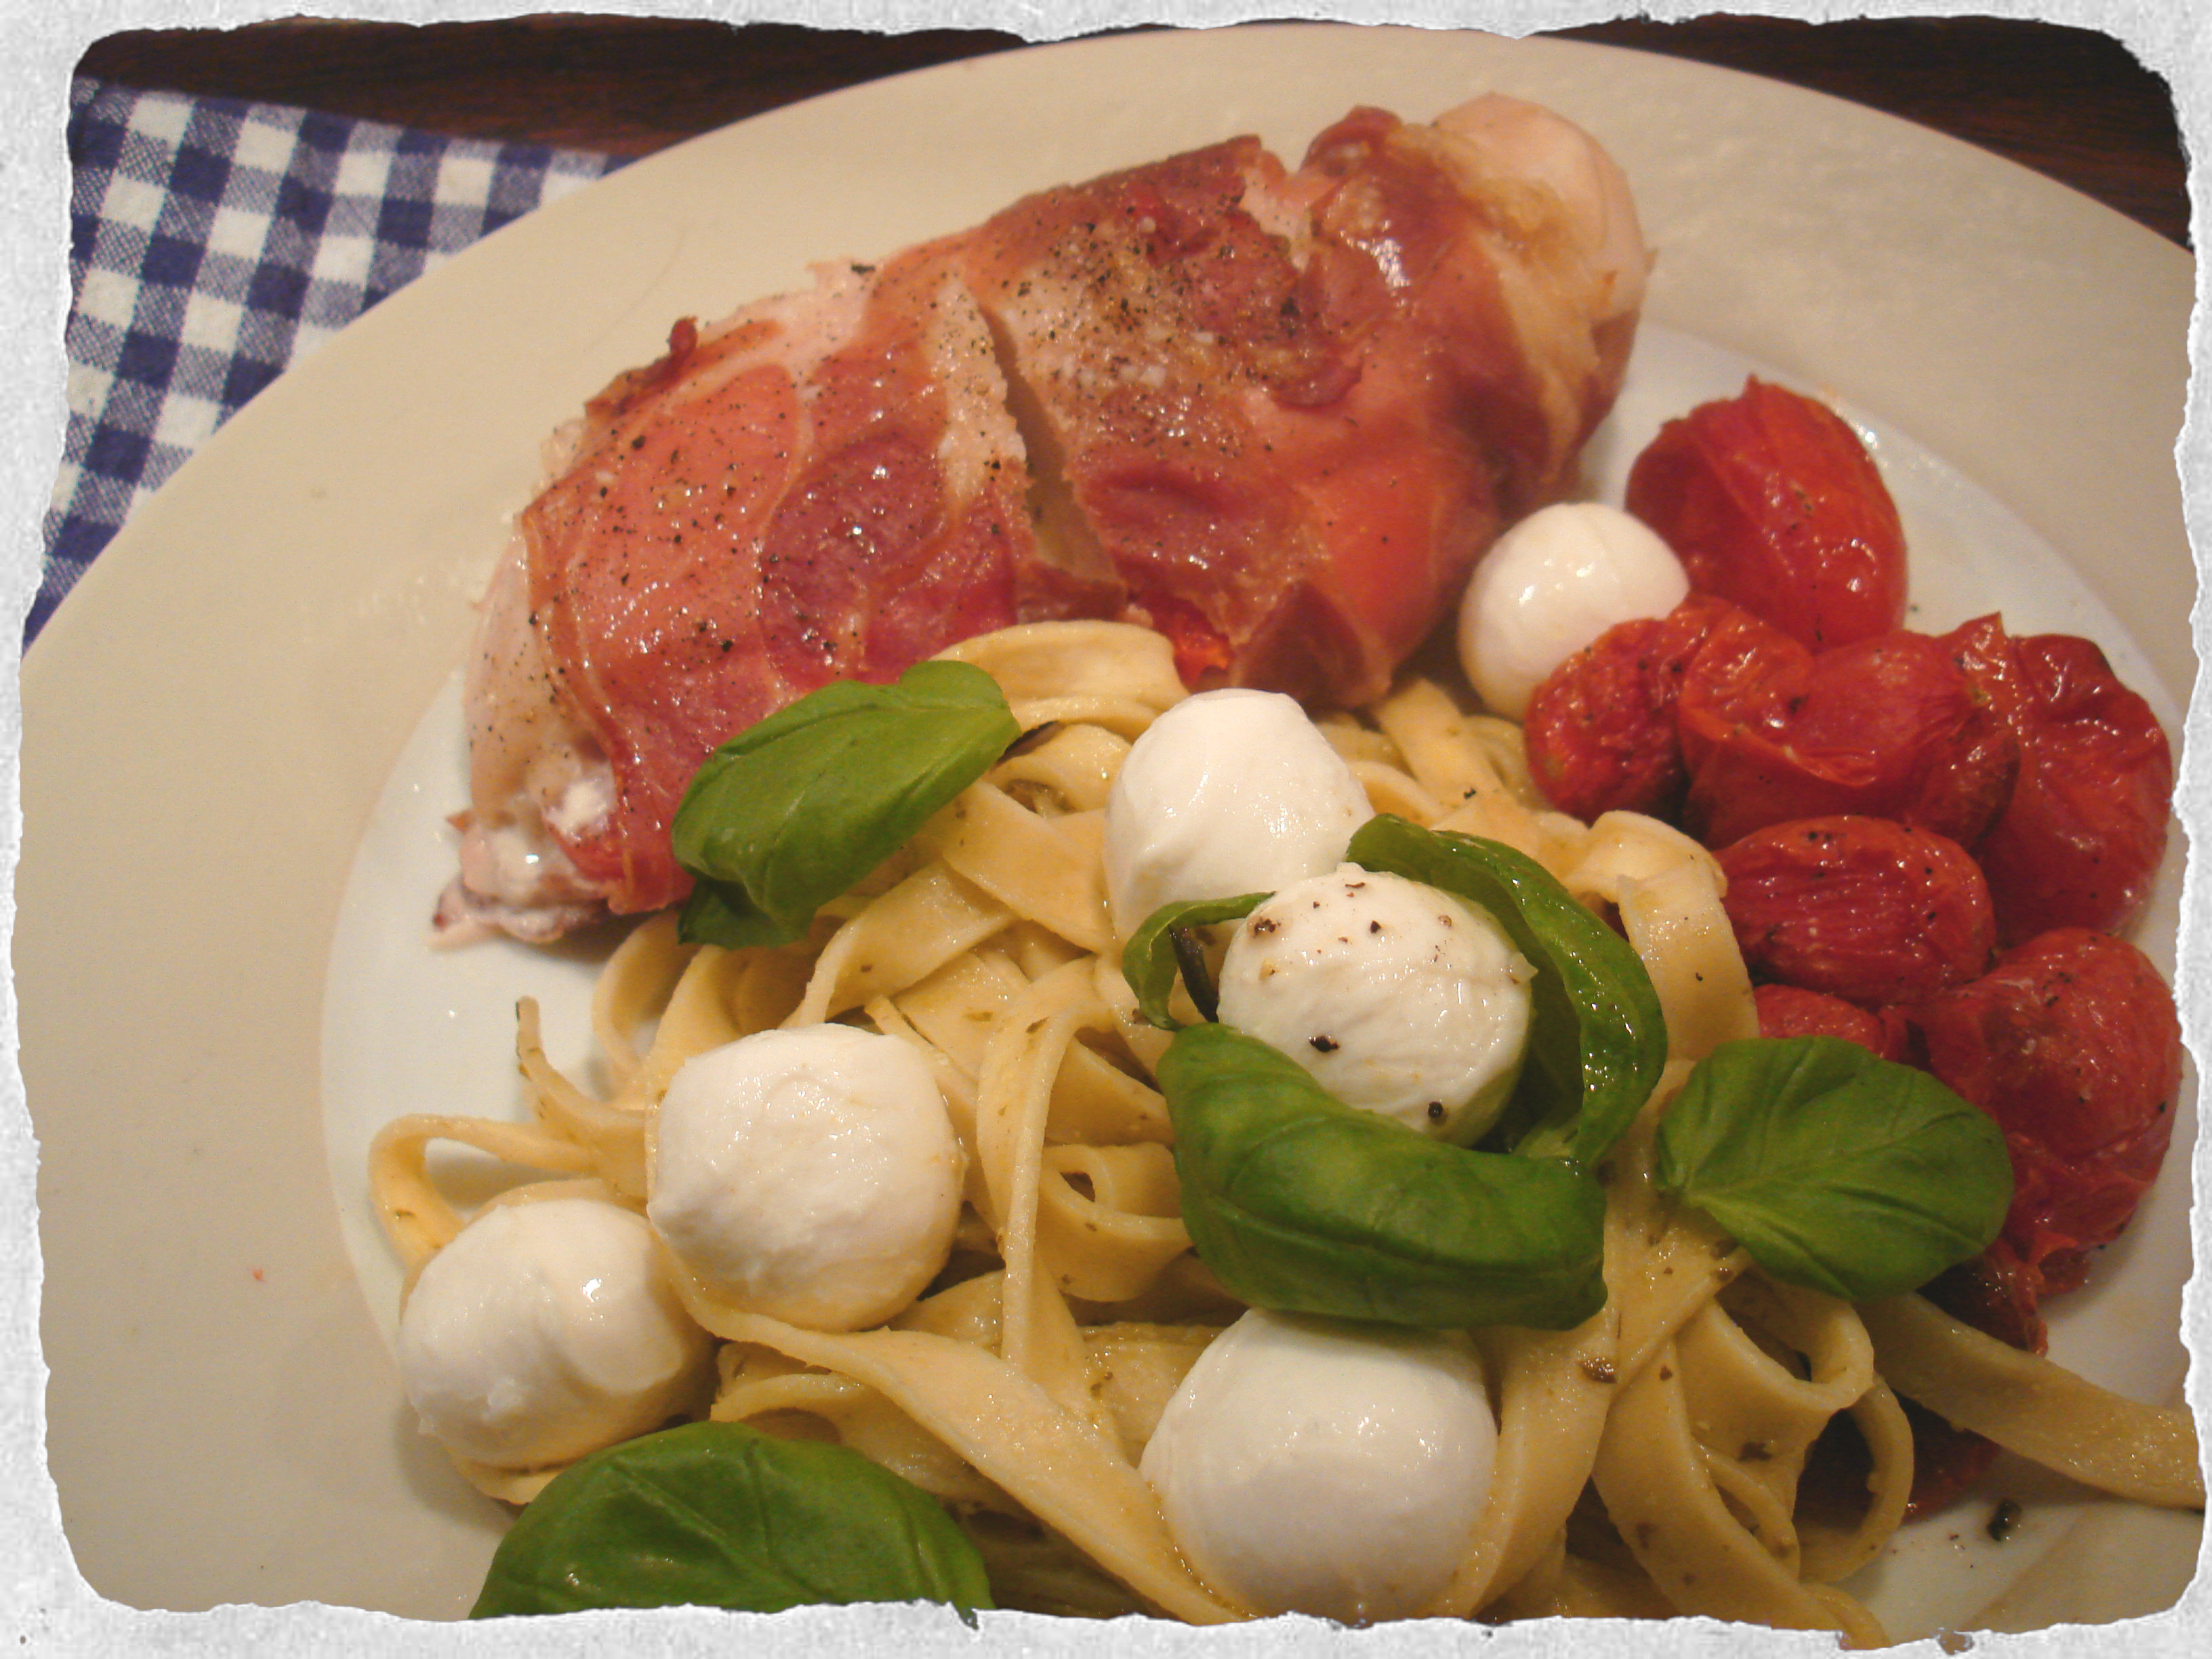 Dinner for one – Stuffed chicken breast, pesto pasta and roasted cherry tomatoes